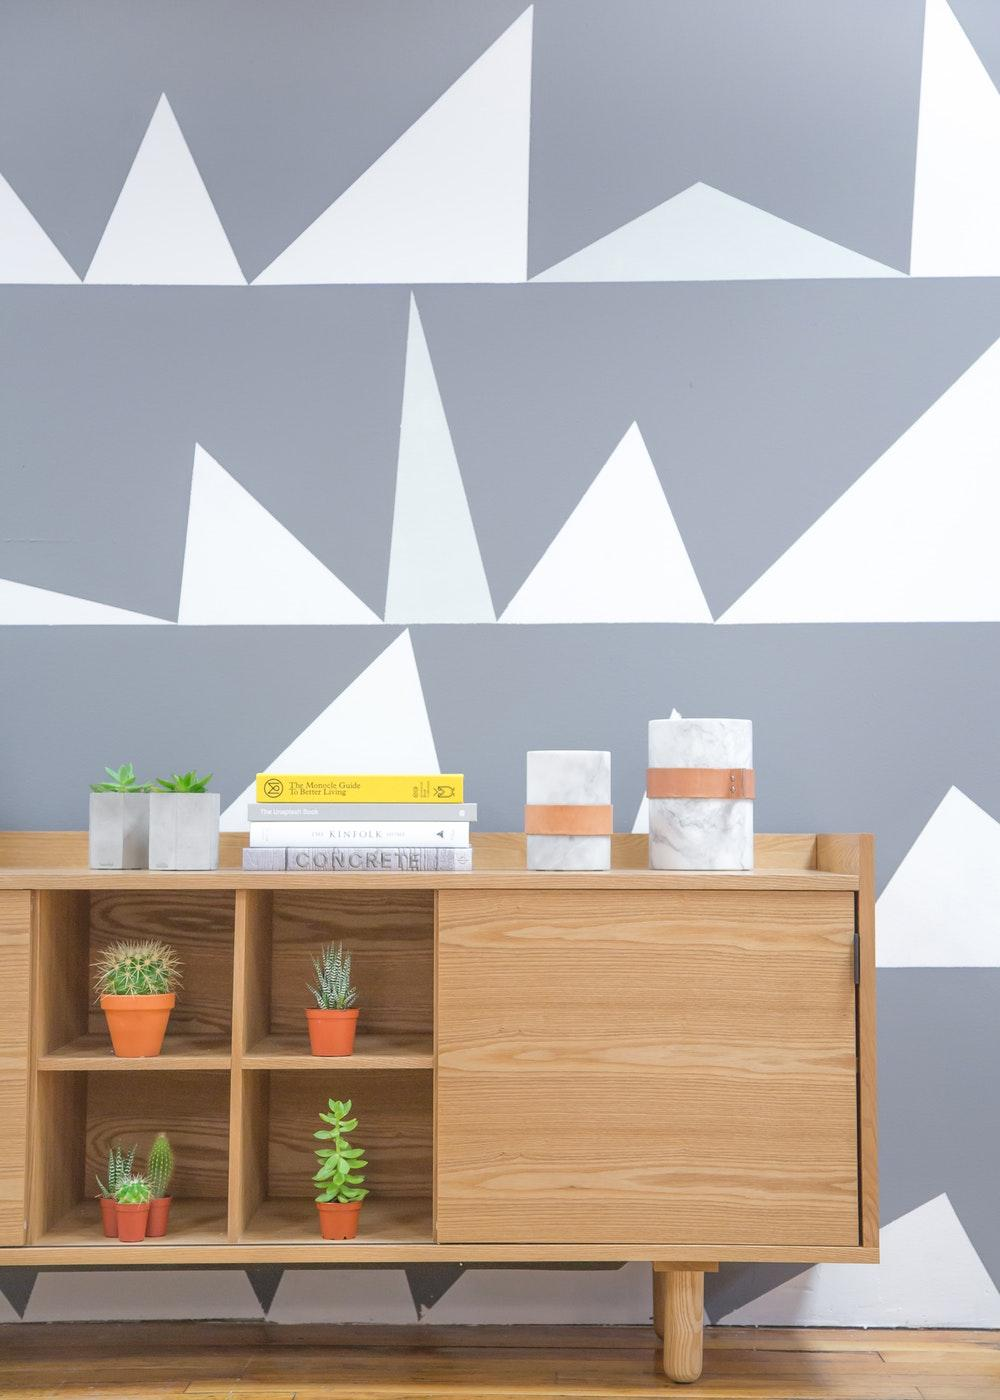 A desk with potted green plants and a stack of books near a wall with a geometric pattern